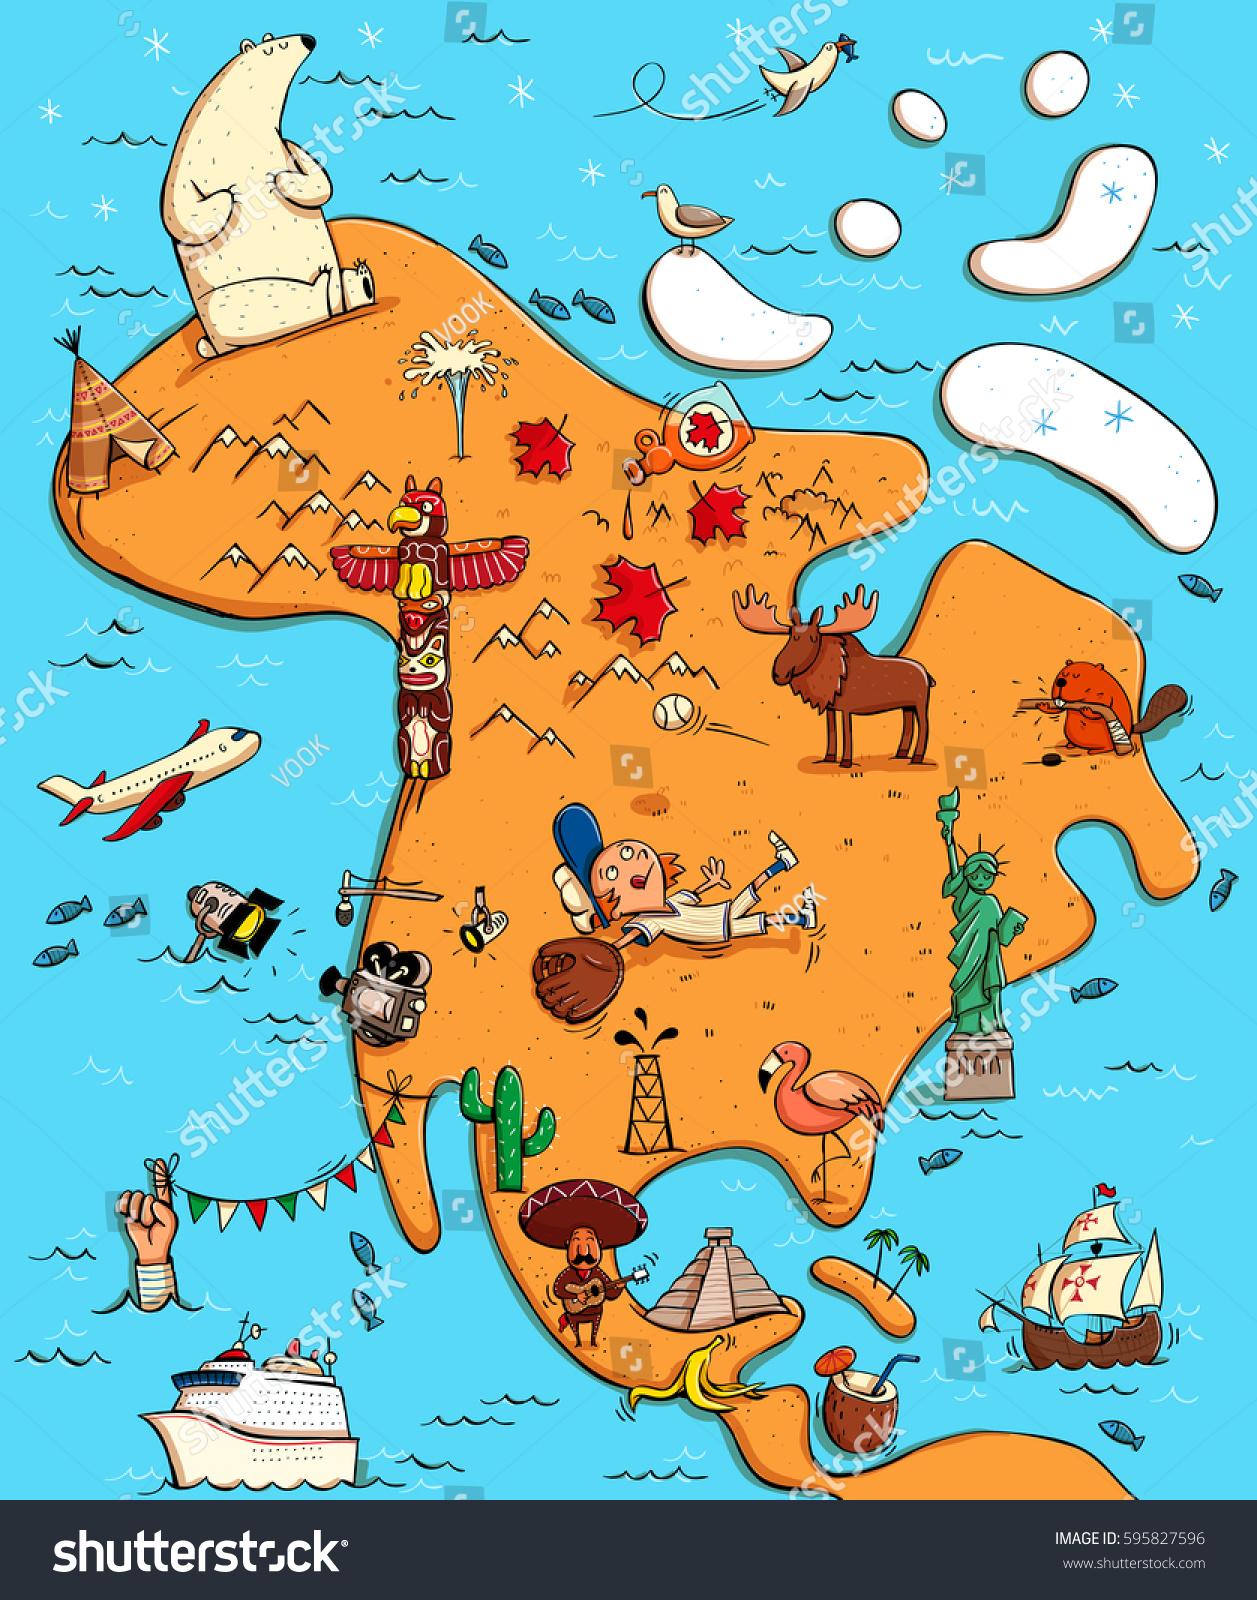 Illustrated map north america funny typical vectores en stock illustrated map north america funny typical vectores en stock 595827596 shutterstock gumiabroncs Image collections